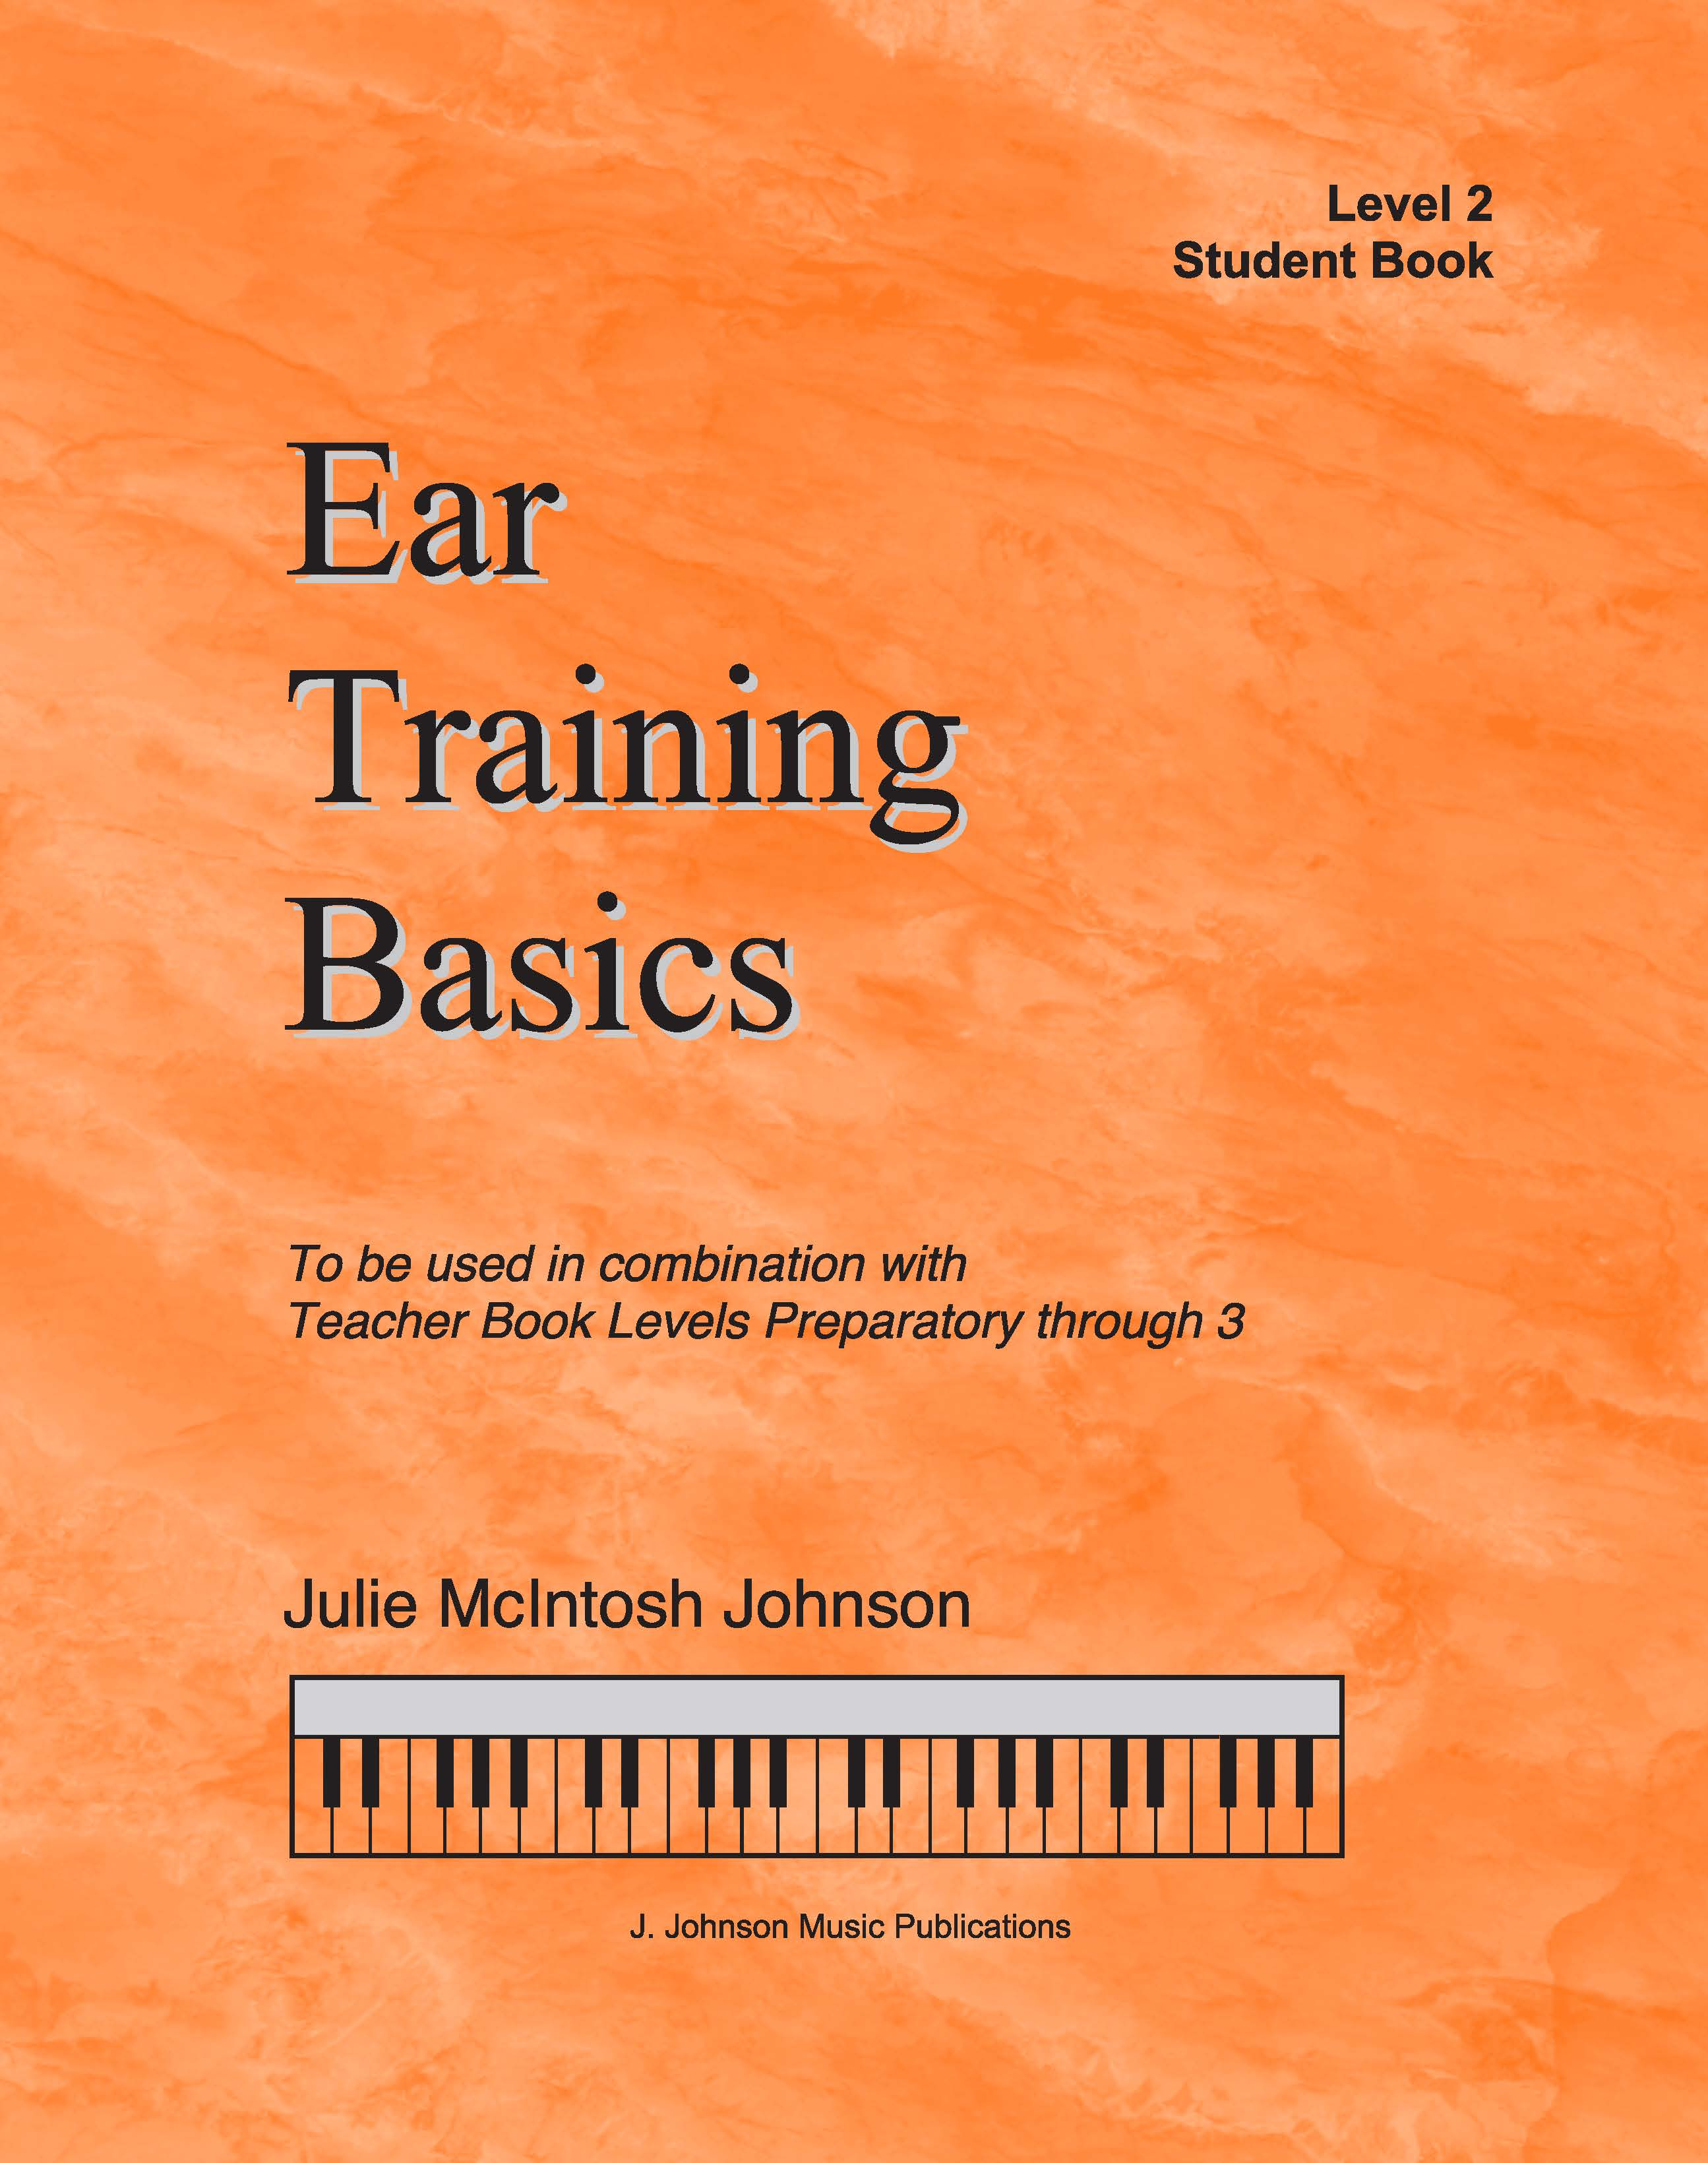 Ear Training Basics Level 2